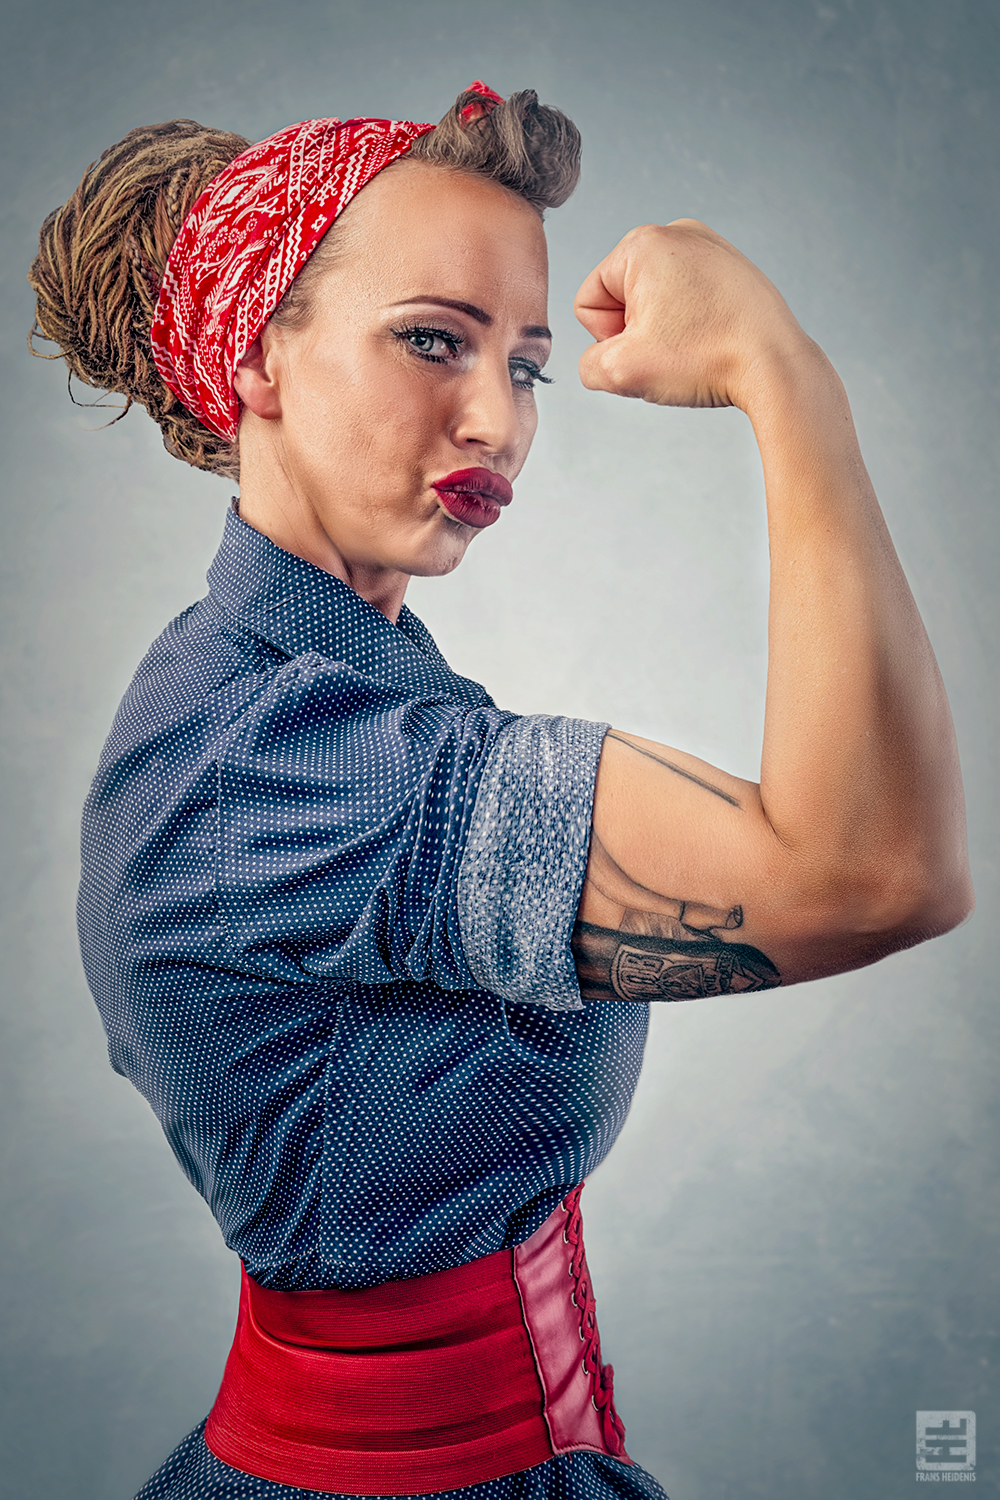 Portret Fotografie - Portret van klassieke pin-up in de pose van Rosie the Riveter